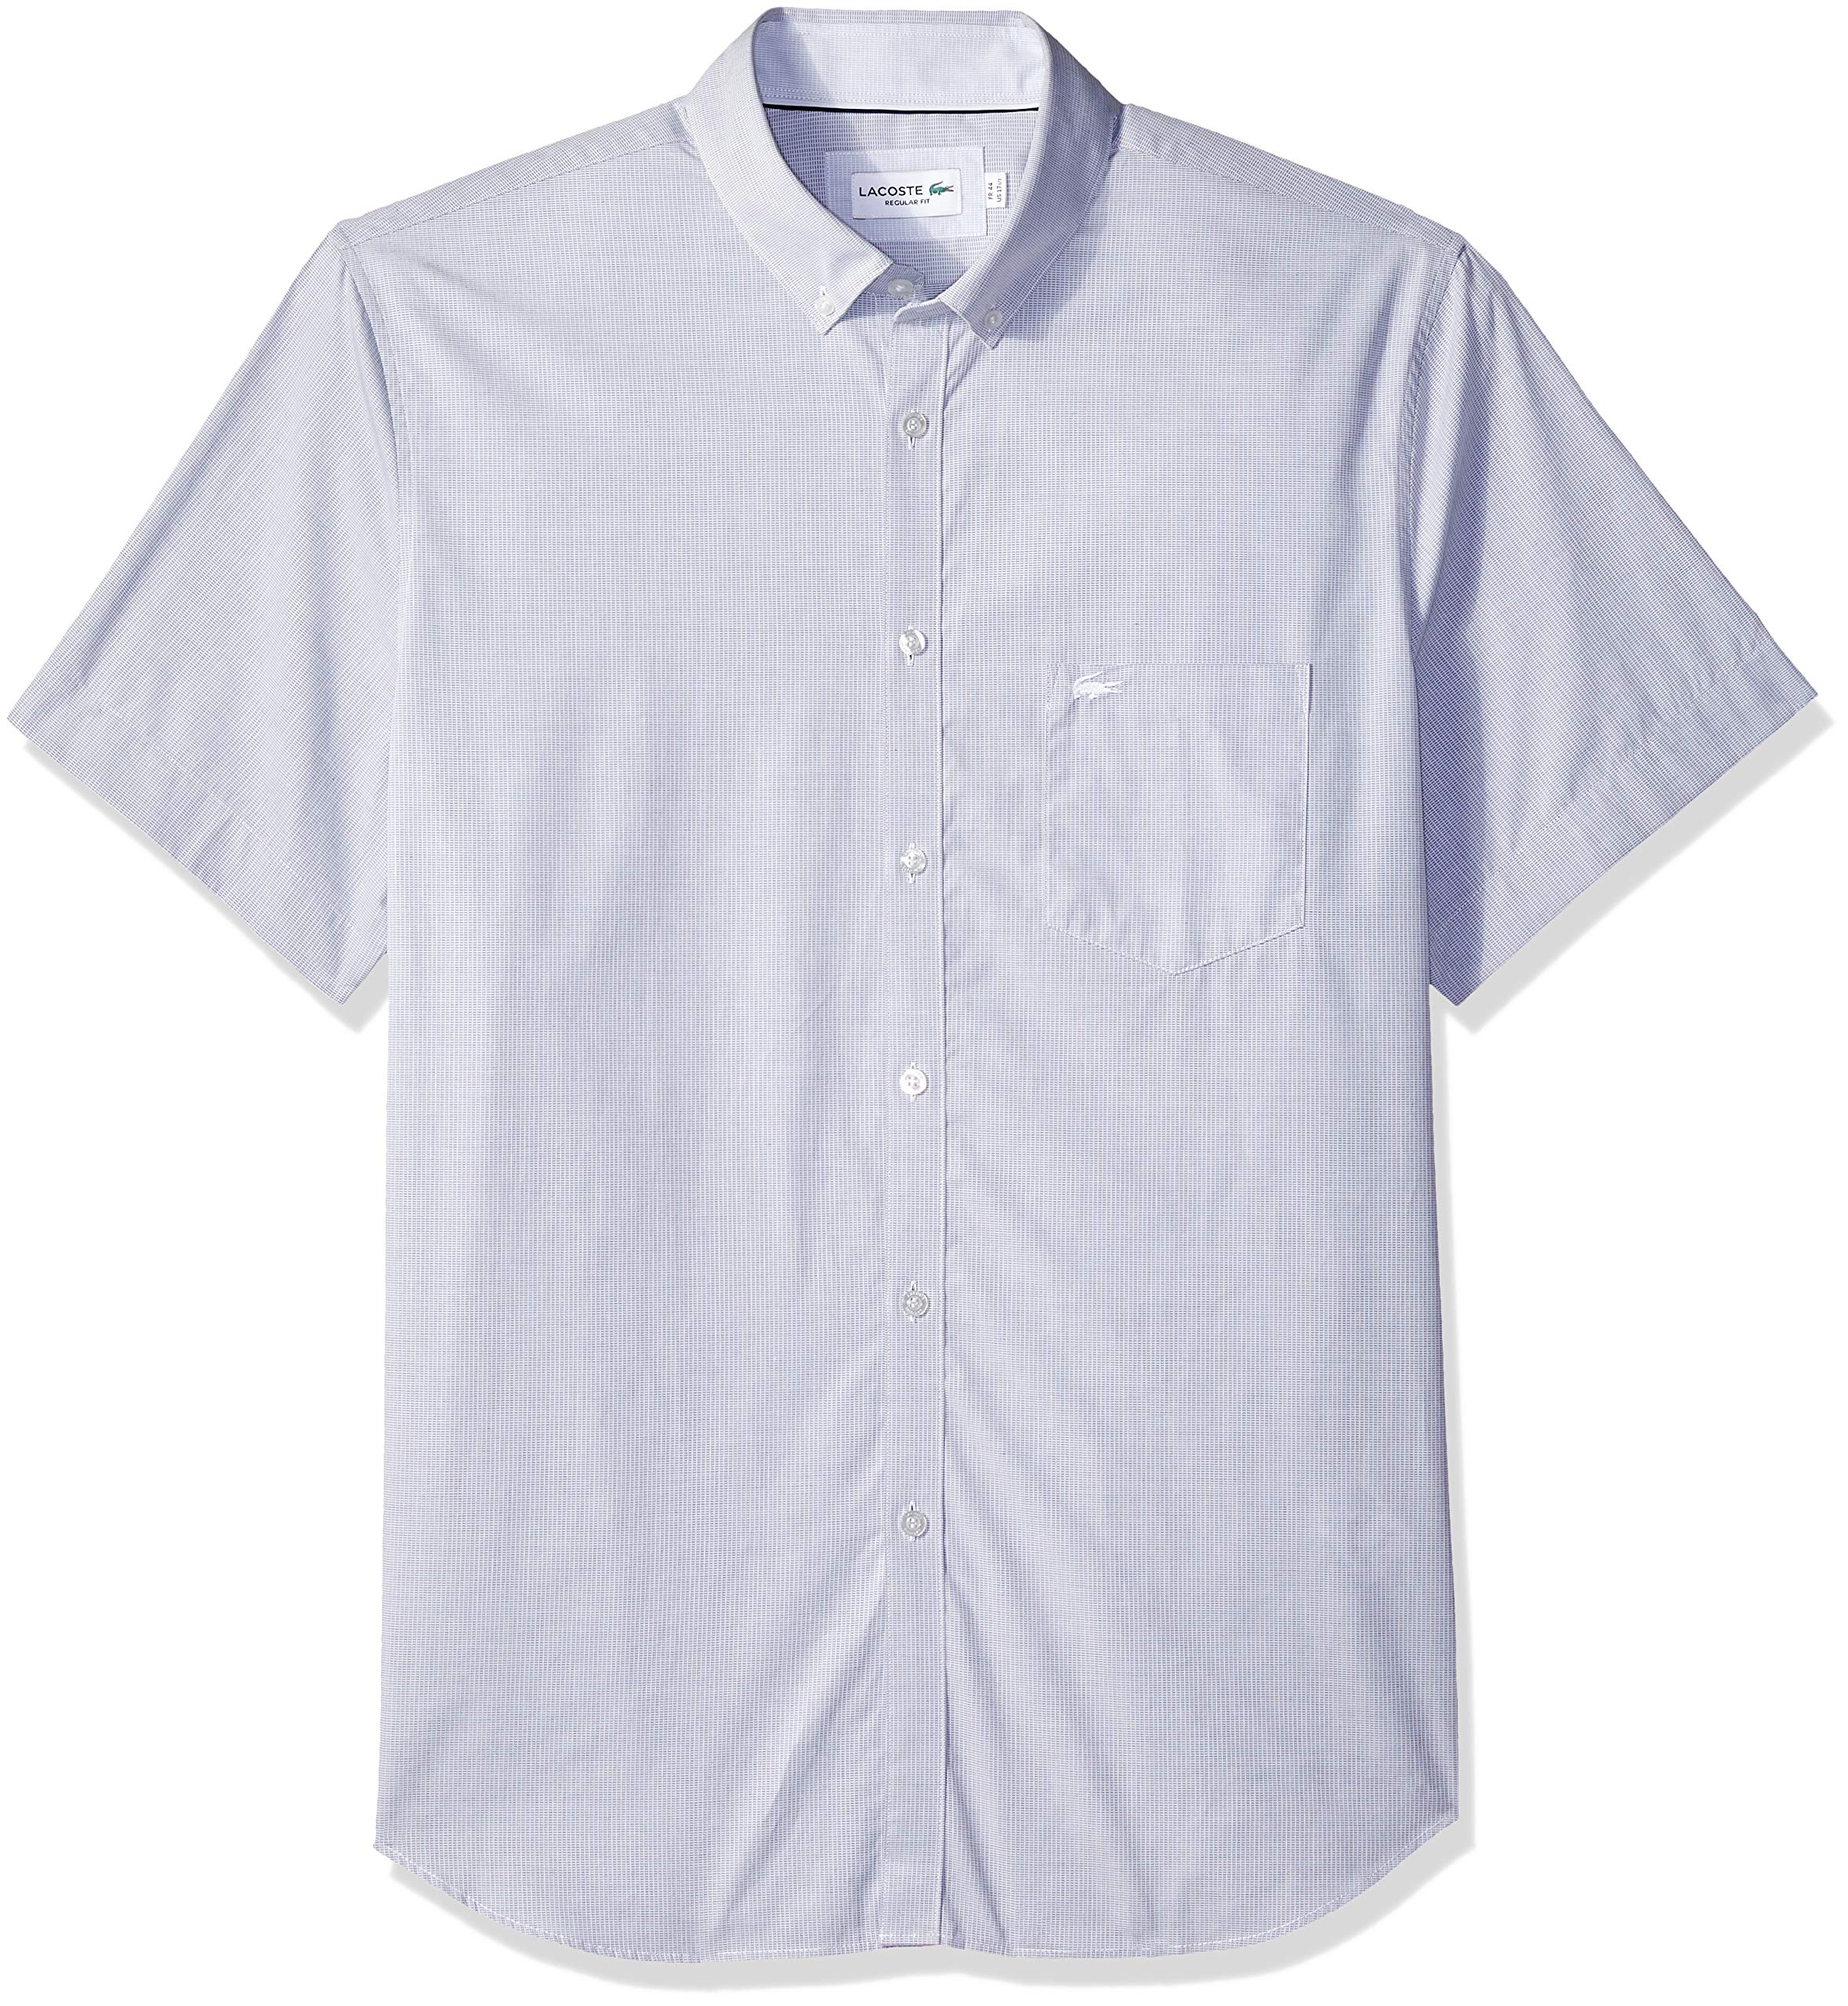 Lacoste Mens Short Sleeve Dobby Button Down Woven Shirt CH1172